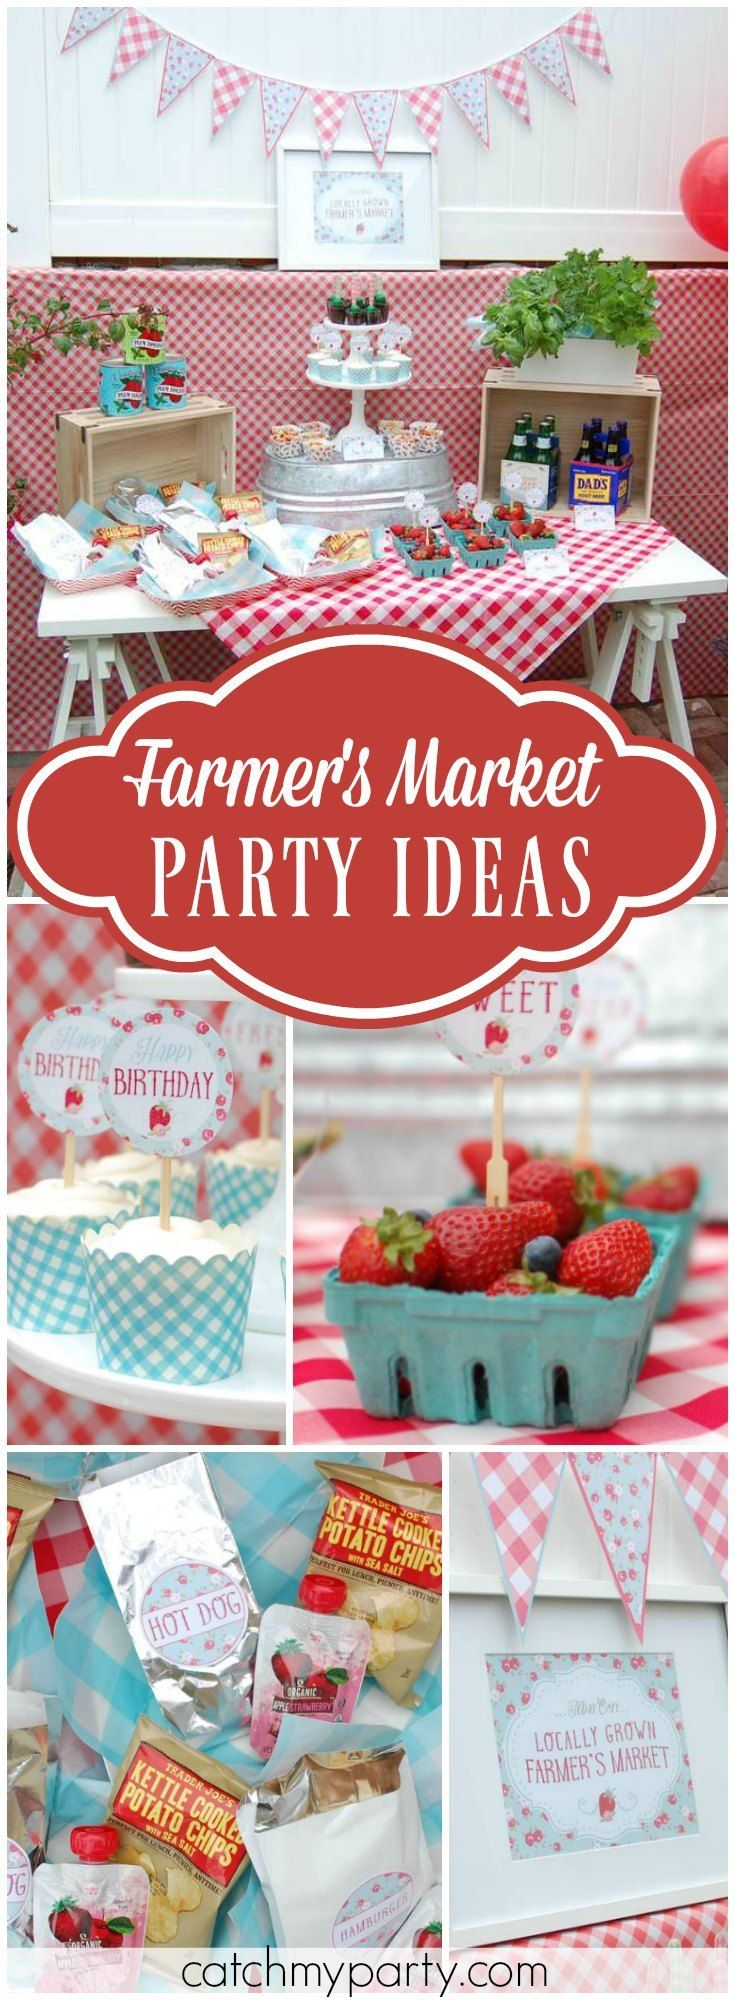 Here's an amazing farmer's market birthday party! See more party ideas at Catchmyparty.com!